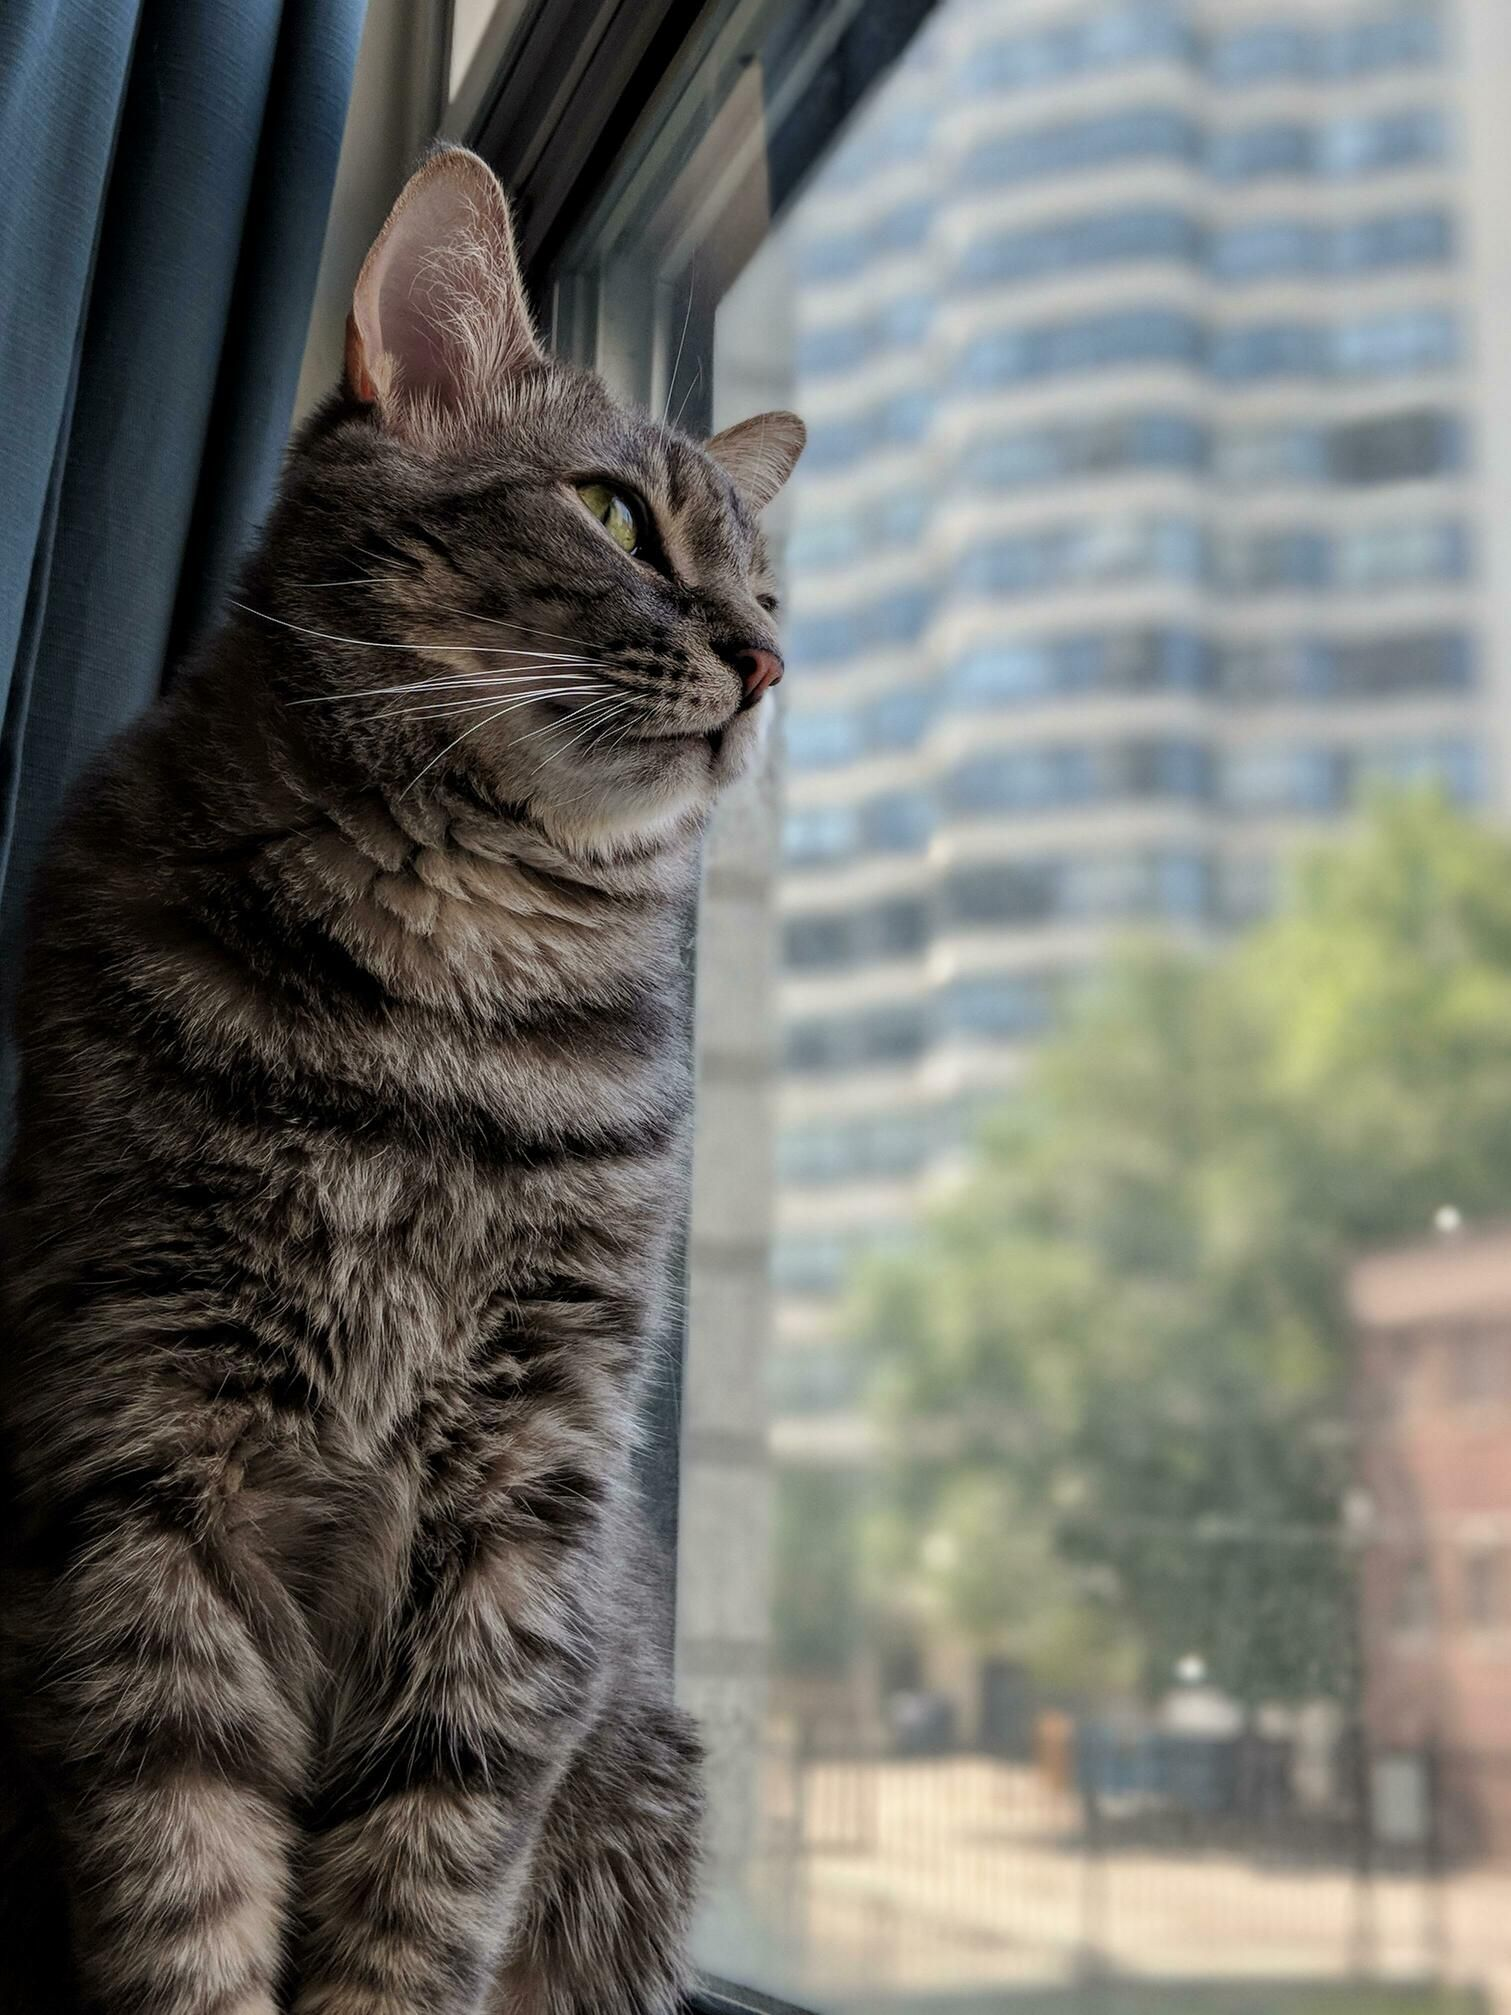 My boy, watching the birds fly by  | Animals | Cats, Cats